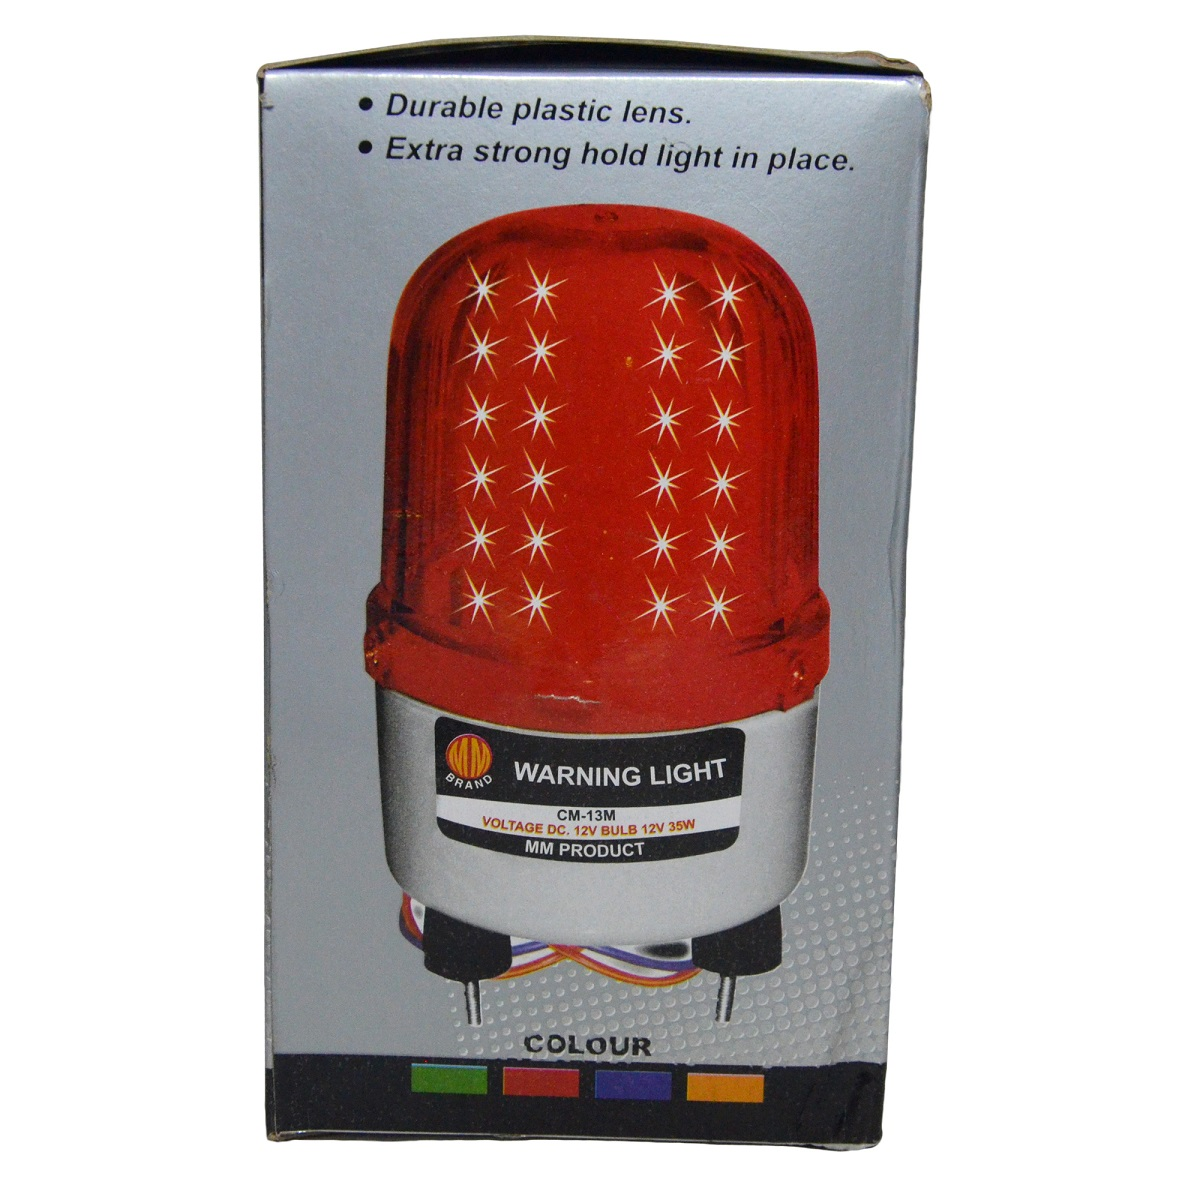 revolving chair manufacturer in lahore monoblock covers for sale led industrial signal warning home shopping